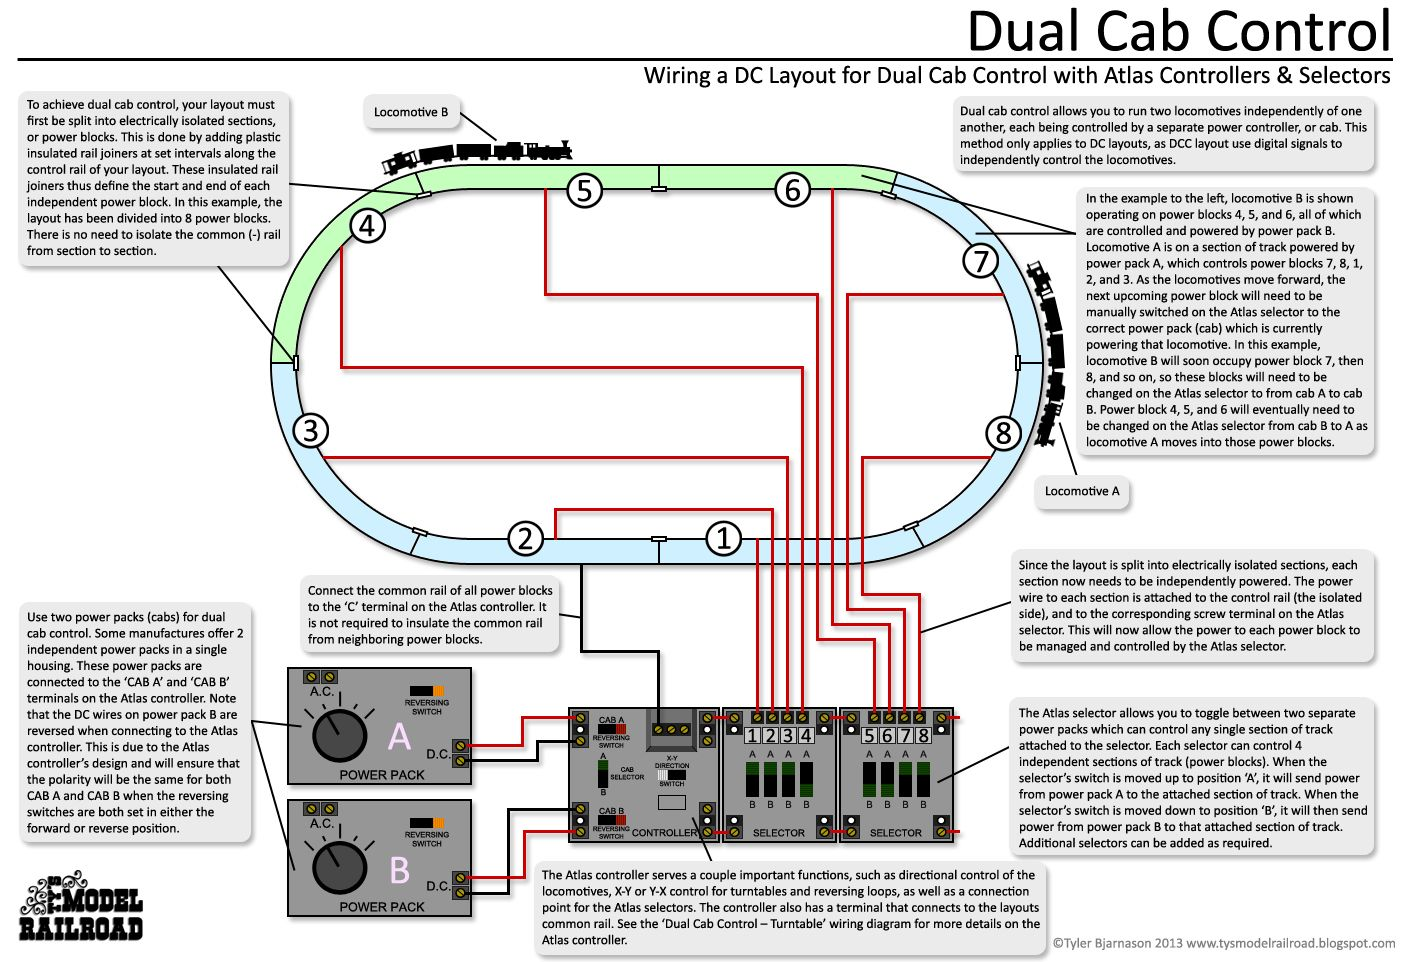 wiring ho model train layouts further model railroad wiring moreover model railroad wiring diagrams wiring diagram [ 1409 x 962 Pixel ]